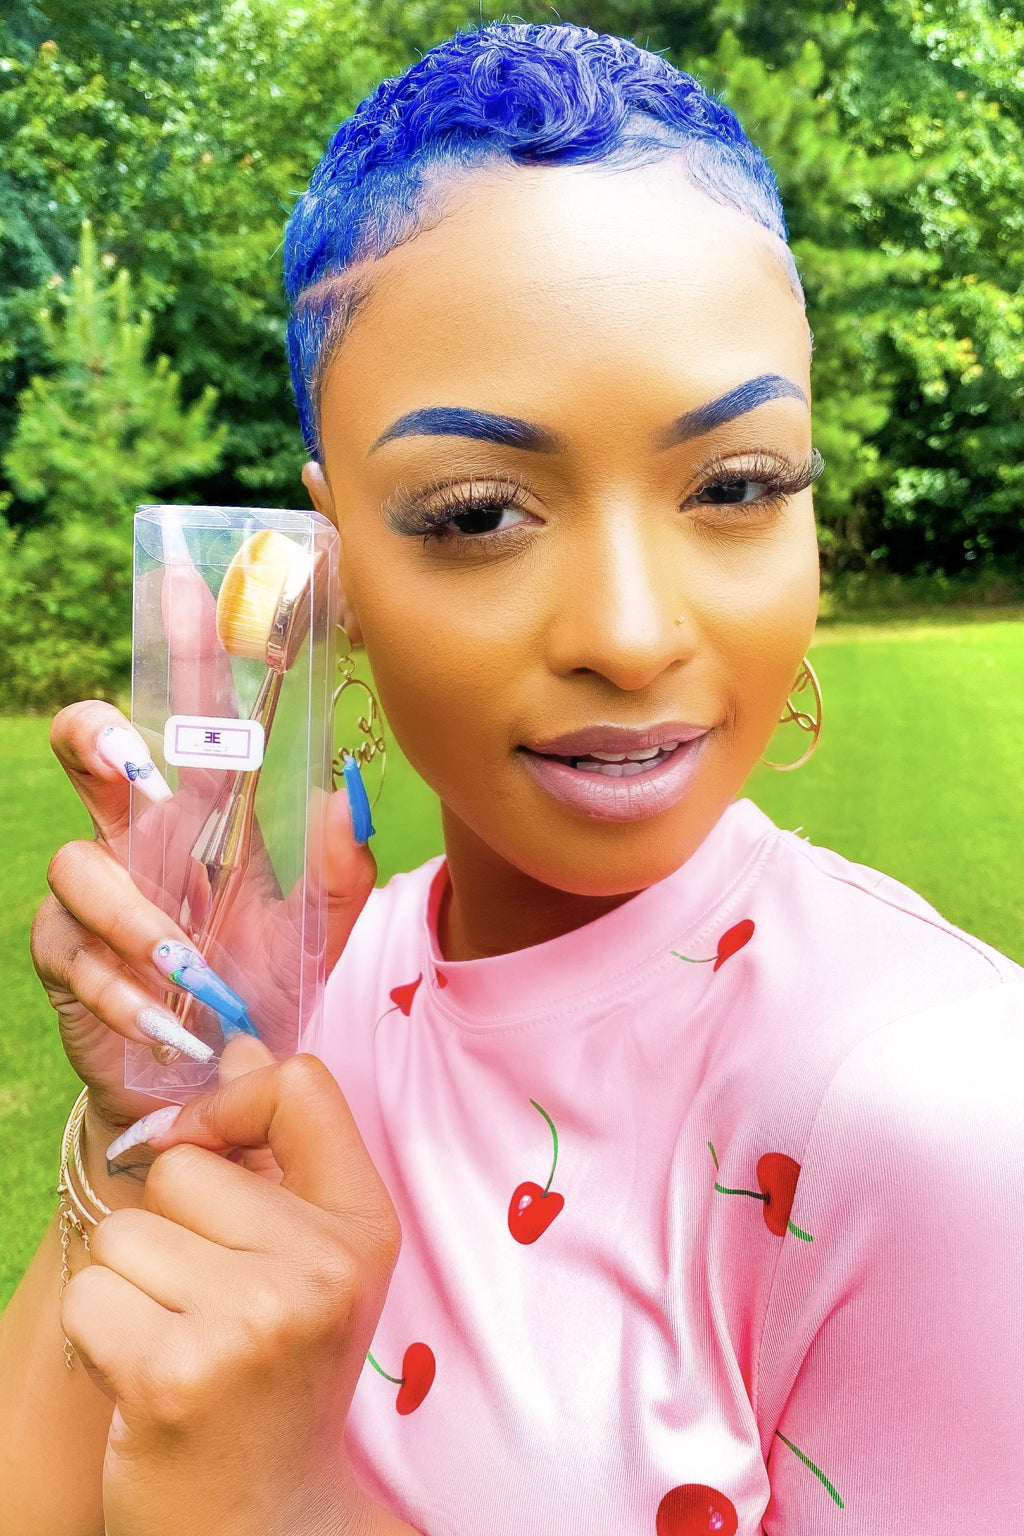 Everything Beat - Foundation Brush - EarringEverything.com - Makeup - earrings - fashion - fashion_accessories